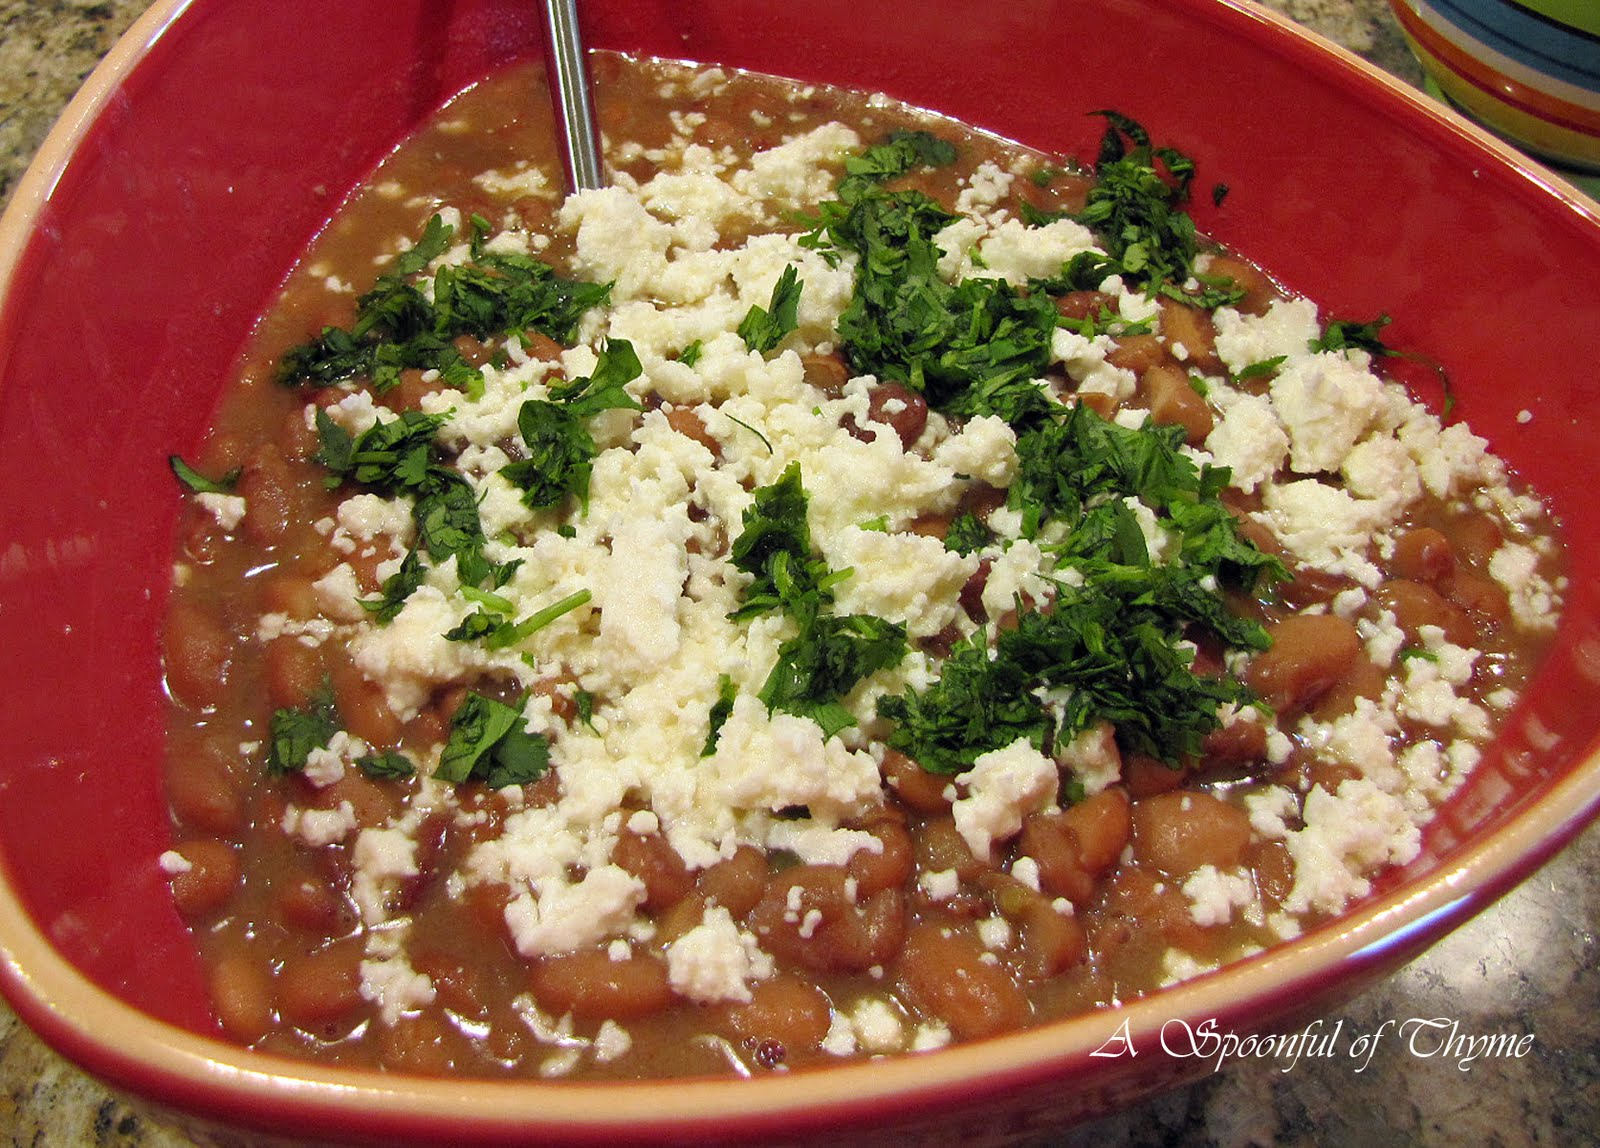 Spoonful of Thyme: And Now for the Bacon-Simmered Pinto Beans!